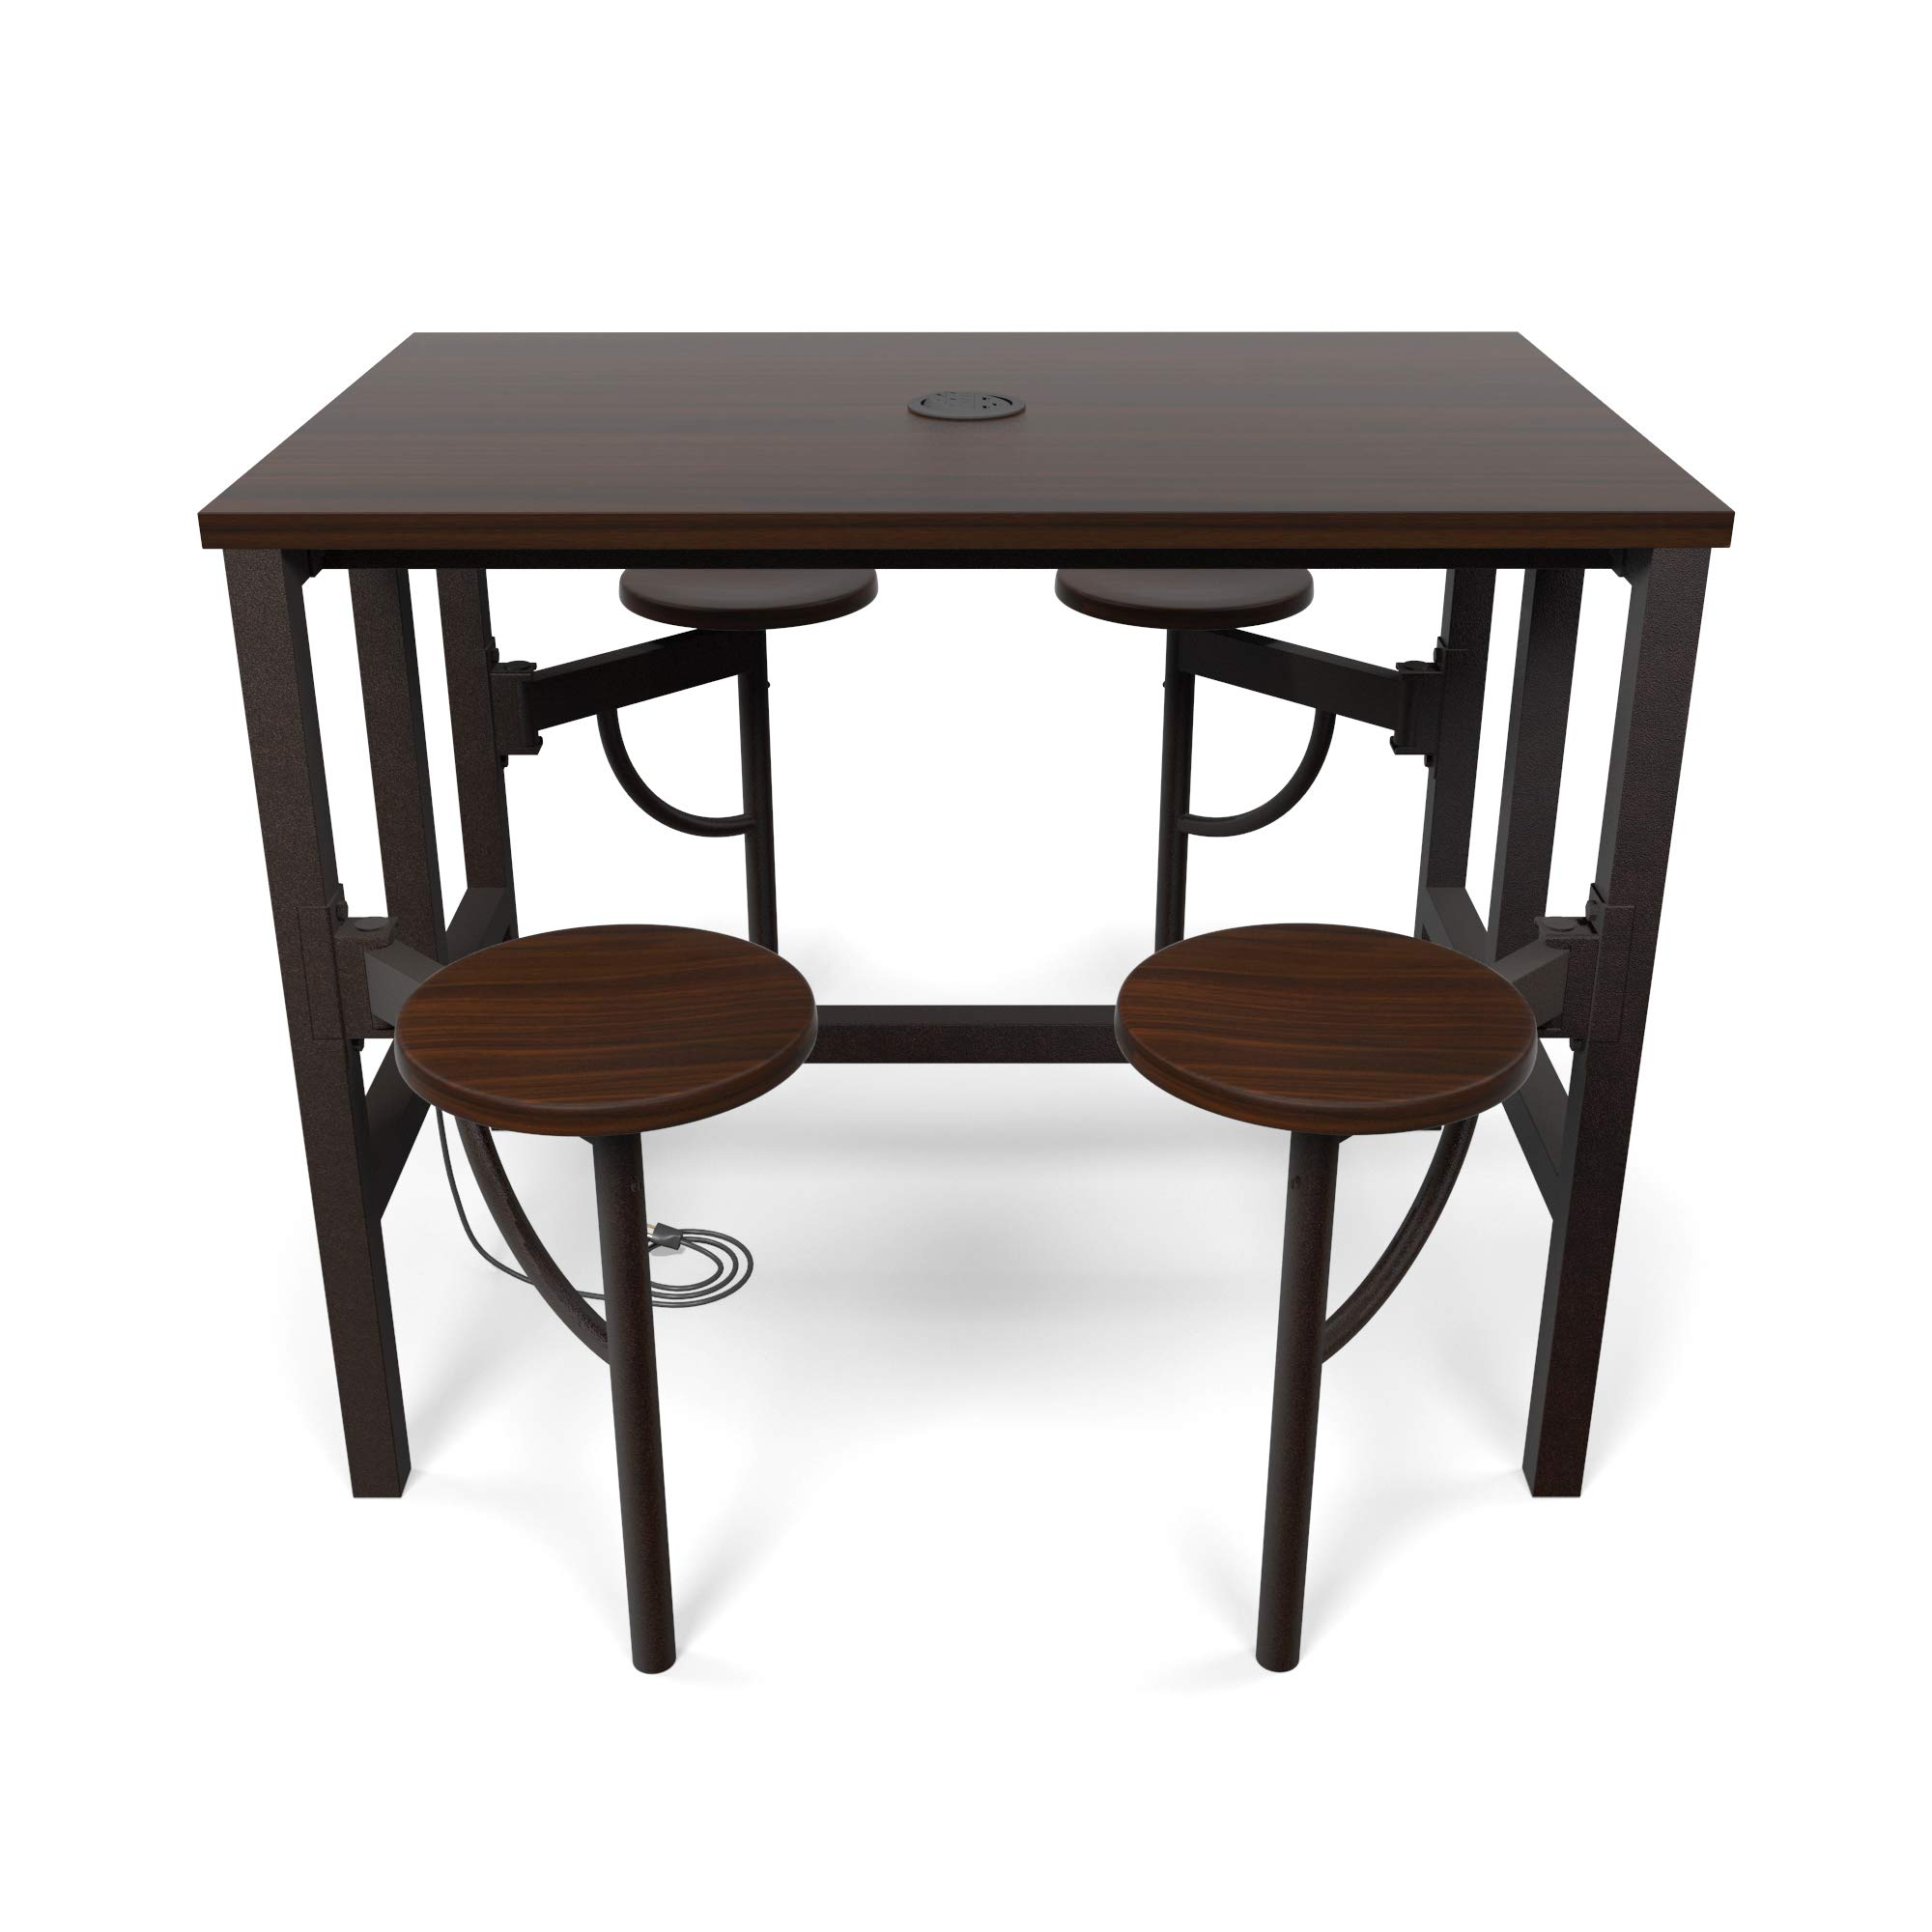 OFM 9004-WLT-WLT Model 9004 Endure Series Standing Height 4 Seat Table, 38'' Height, 31.25'' Width, 47.625'' Length, Walnut by OFM (Image #4)